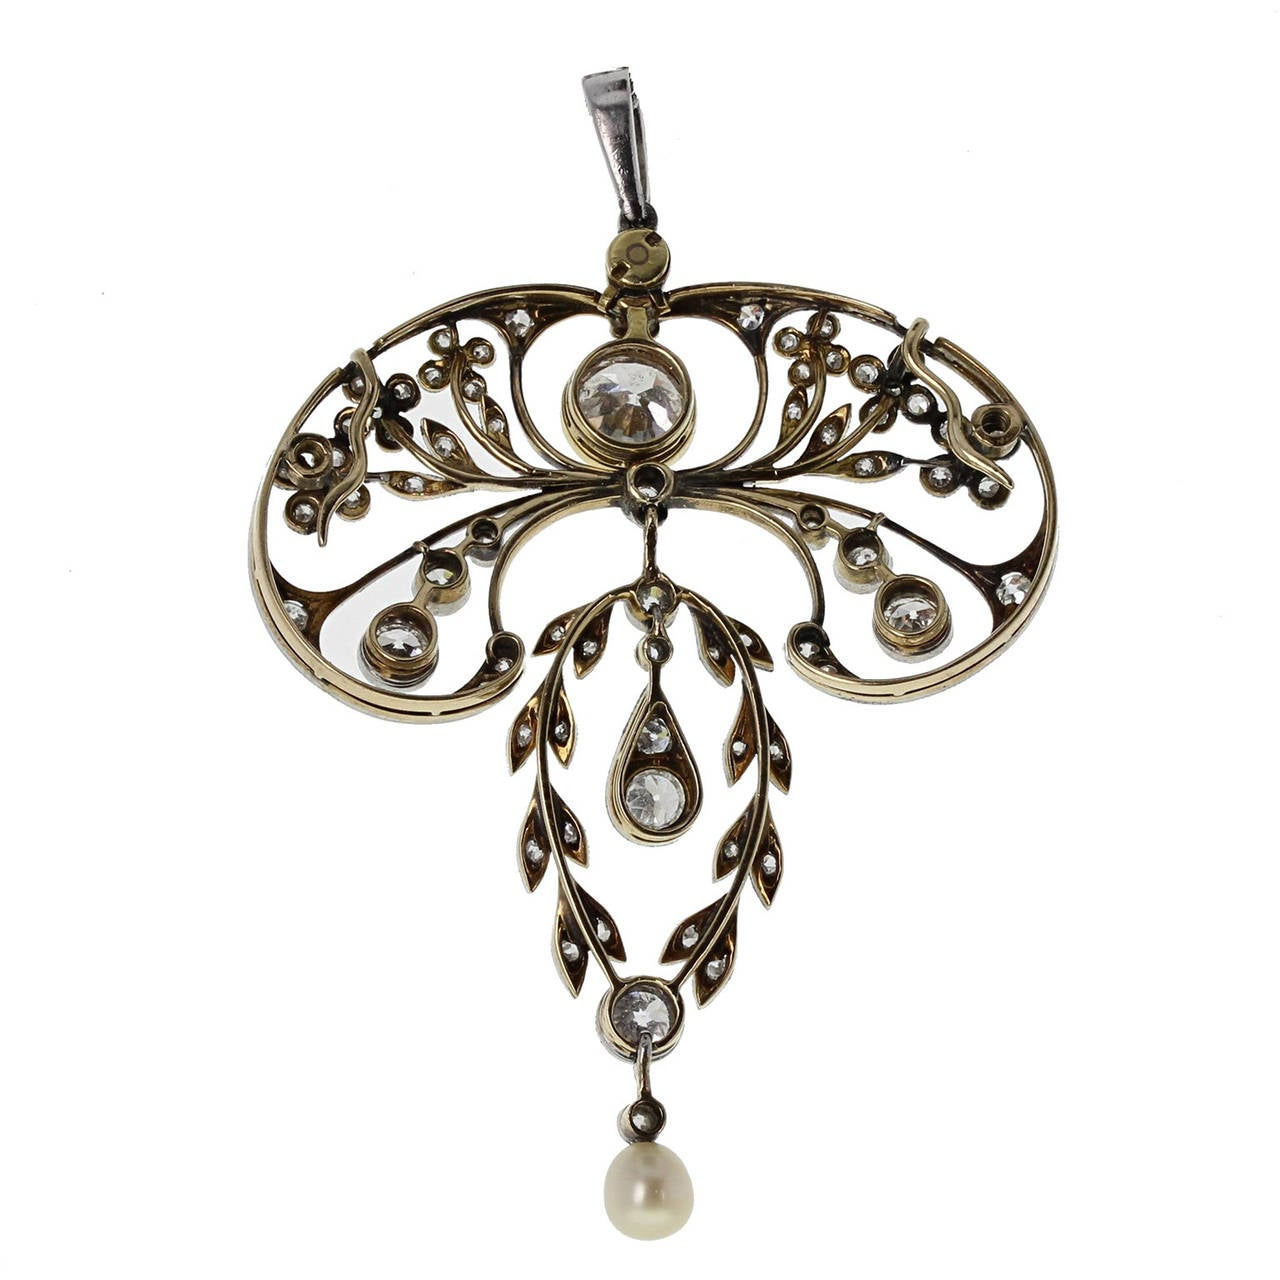 Formed in platinum and 18 carat gold with typical period style and mille-grain edging. A 5mm natural pearl suspended from the bottom articulated wreath section. The central principal diamond weighs approximately 0.75 of a carat, H colour and SI